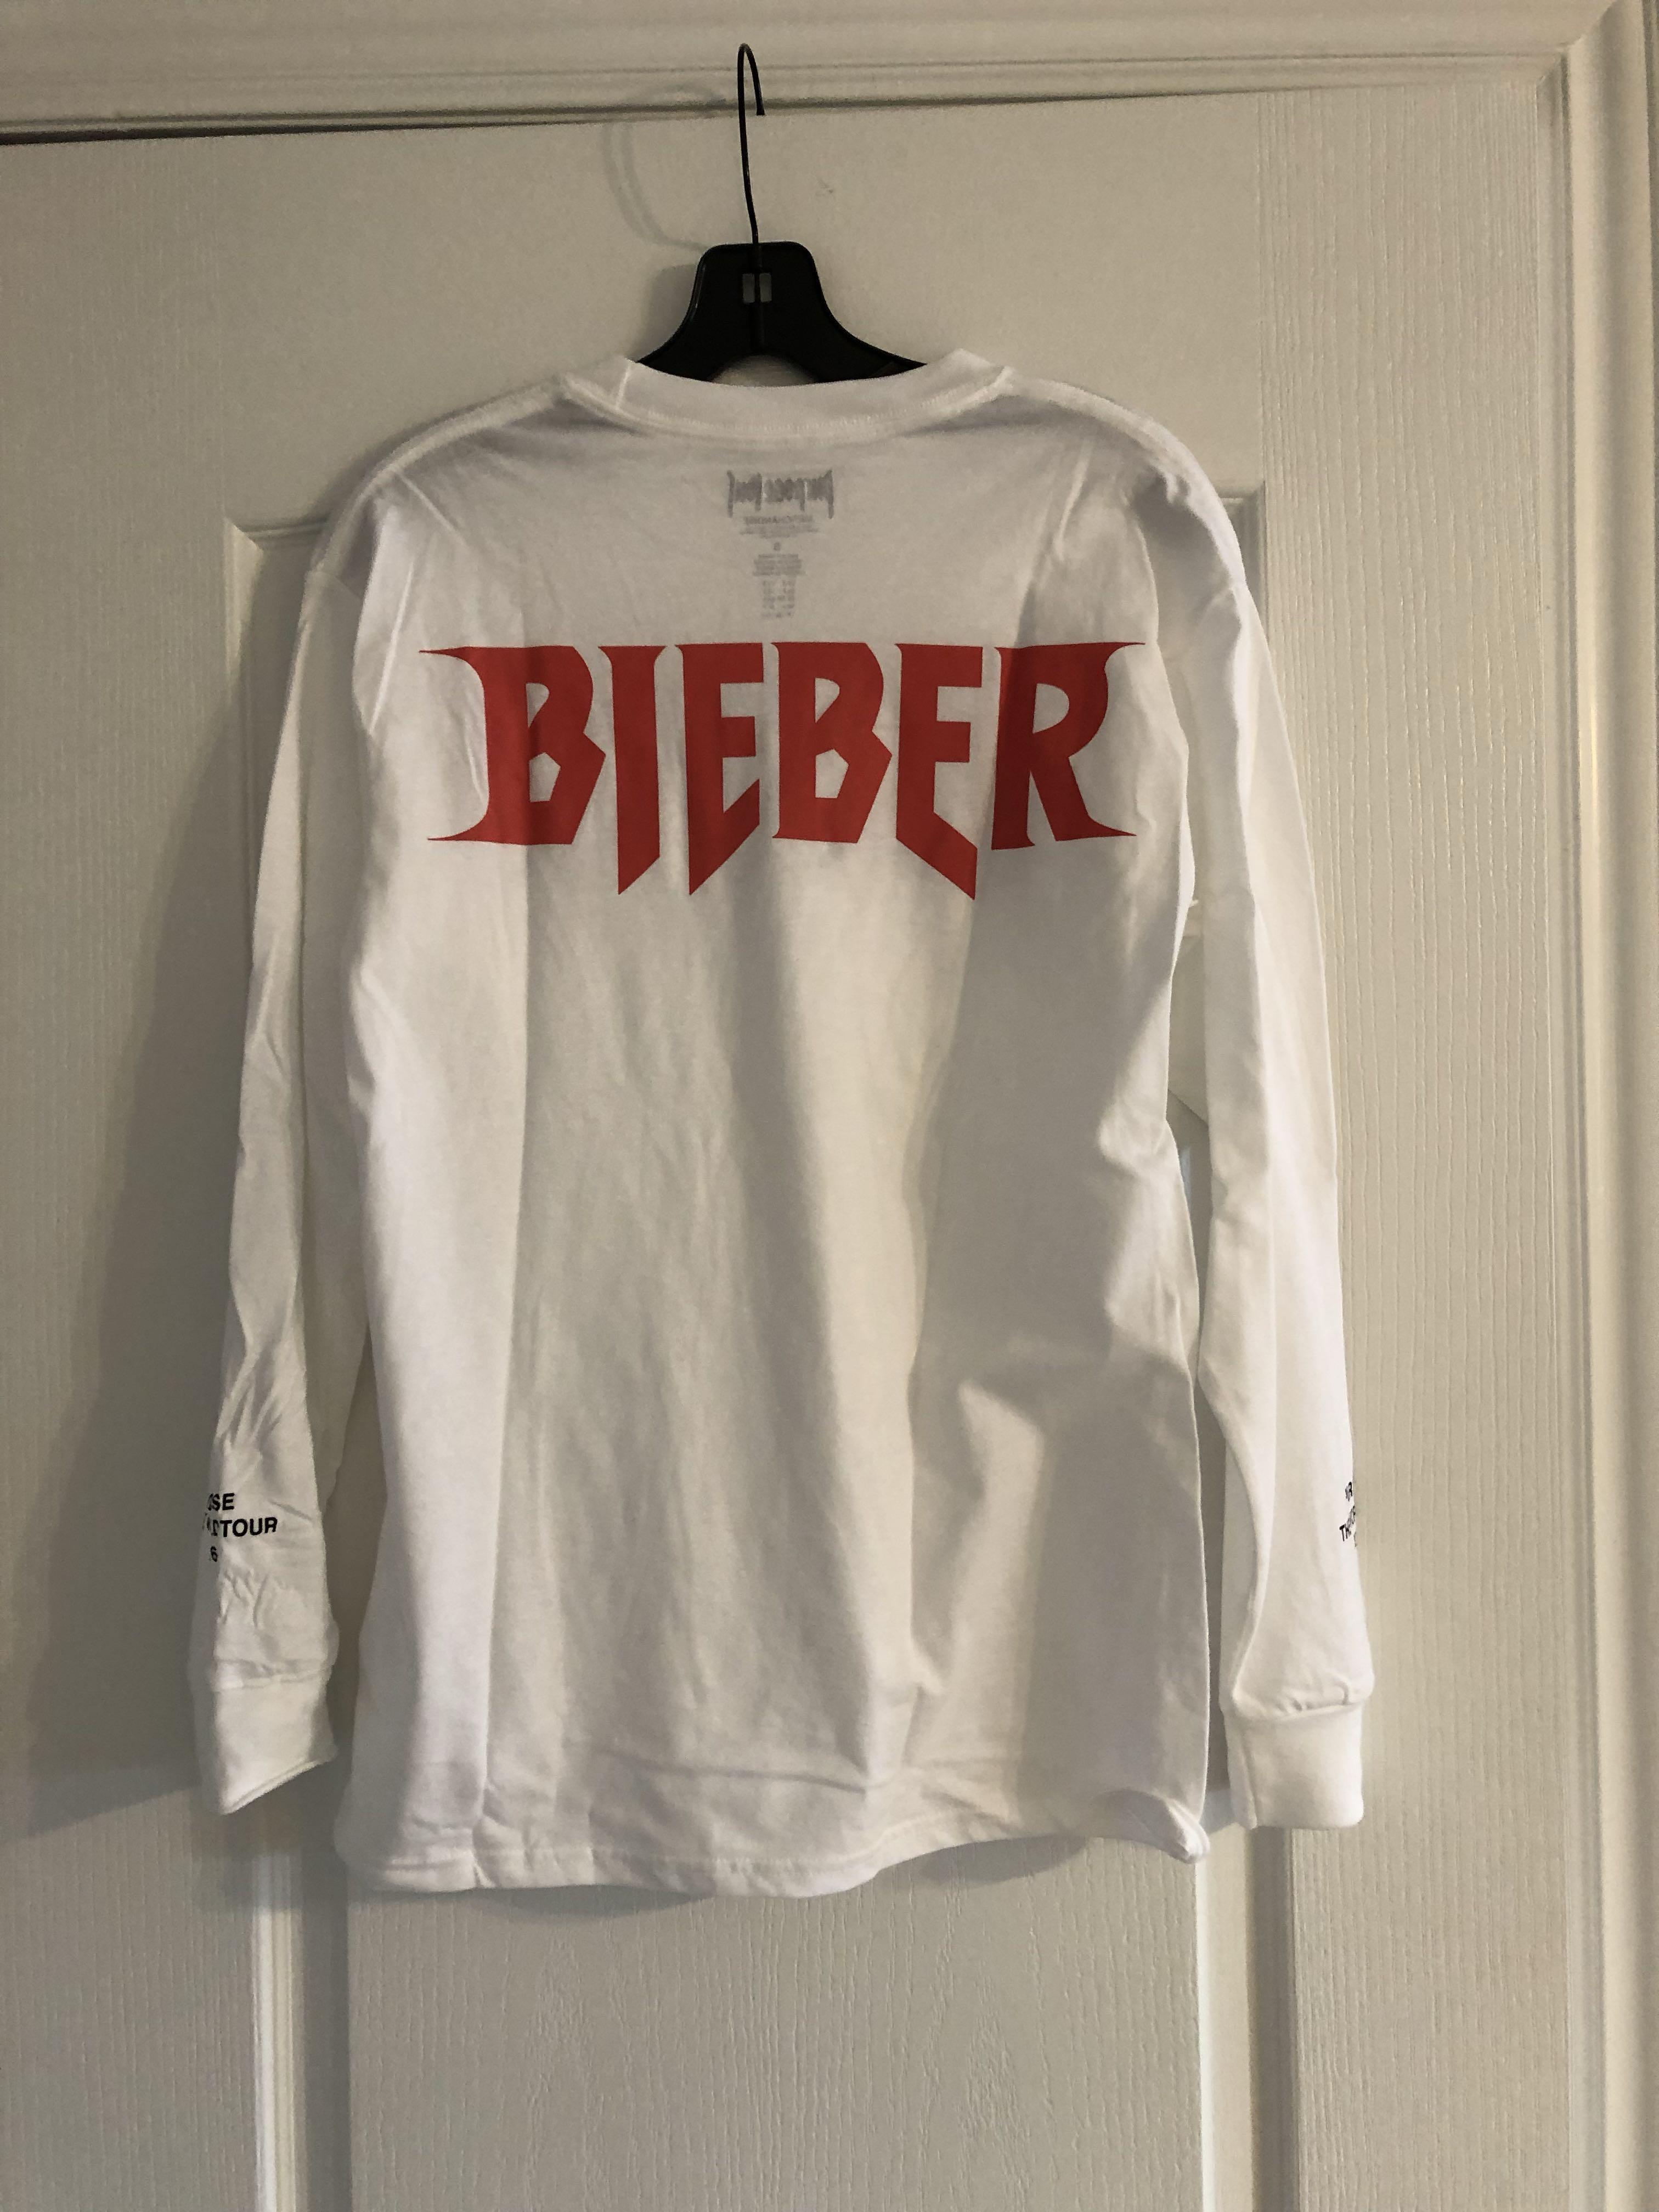 Justin Bieber Purpose Tour Merch Long sleeve size small